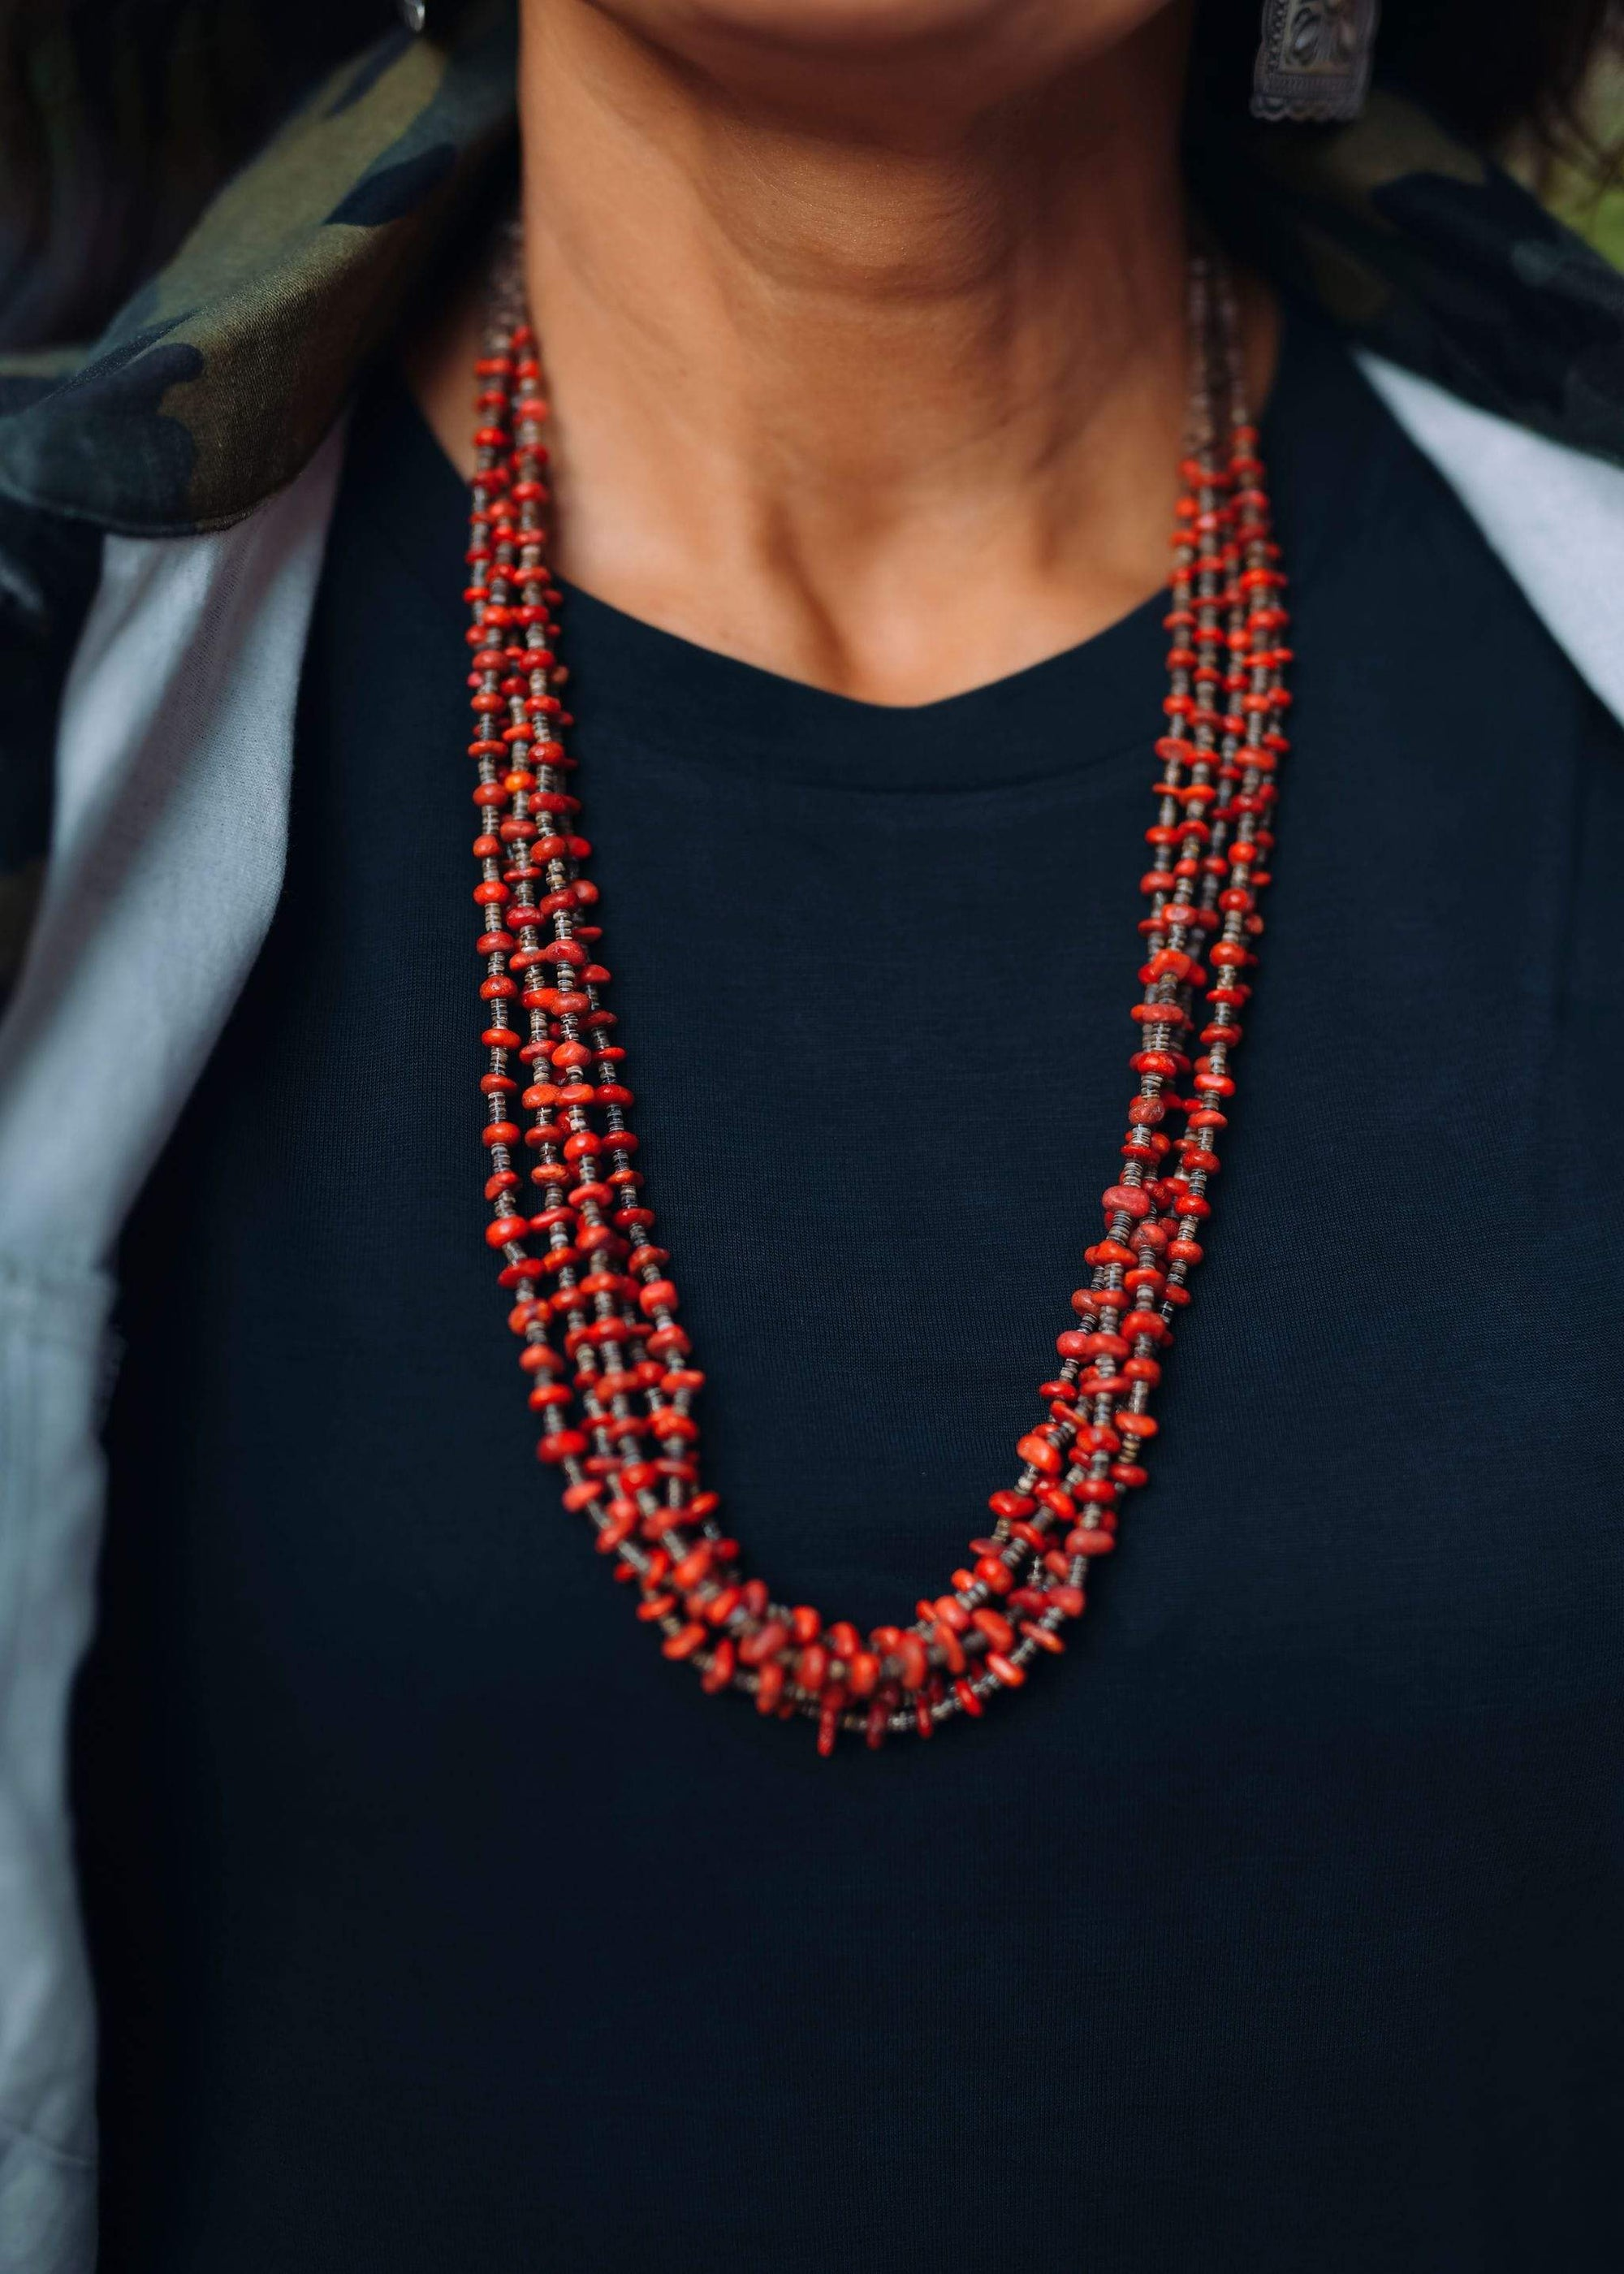 Accessorize In Style Sterling Necklaces Ruby Red Spiny 5 Strand Necklace